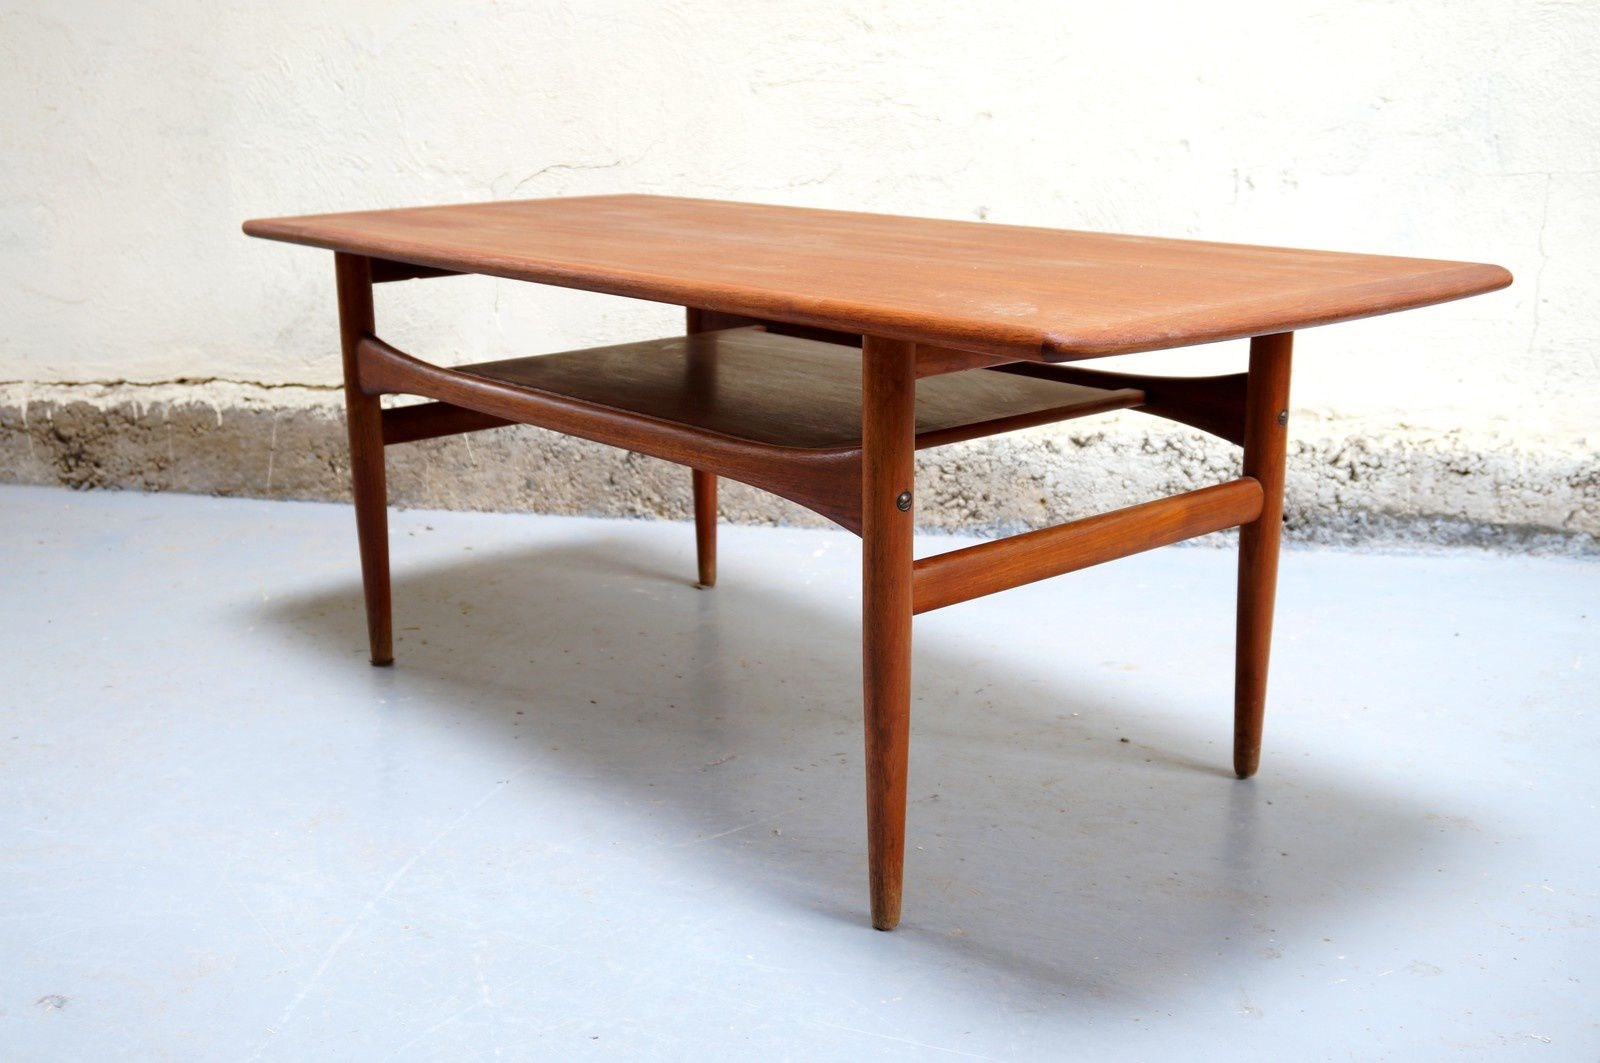 table basse scandinave arrebo mobler danois vintage danish